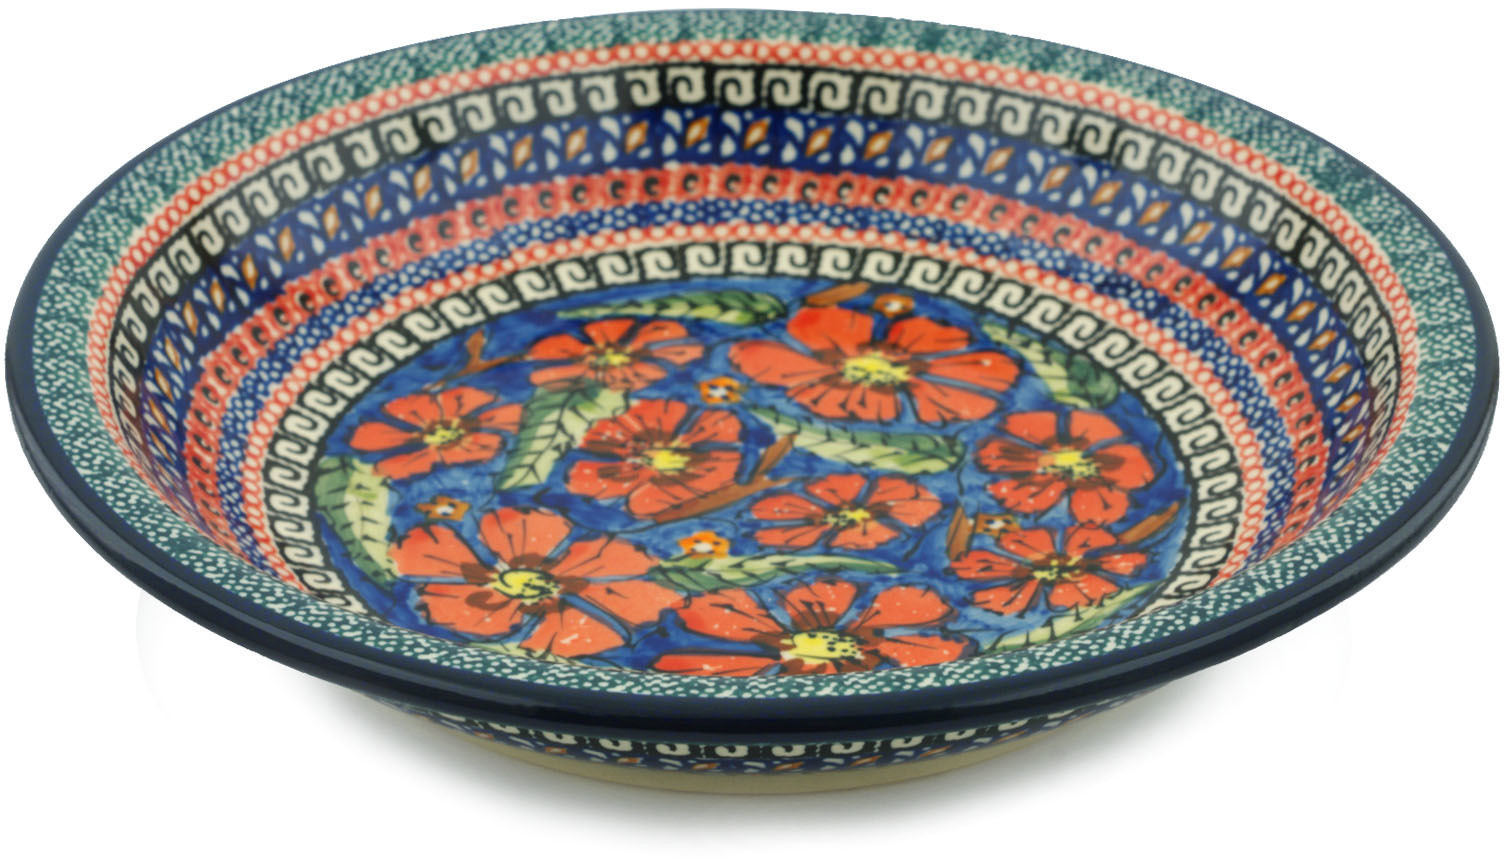 Polish Pottery 9-inch Pasta Bowl (Poppies Theme) Signature UNIKAT Hand Painted in Boleslawiec, Poland +... by Zaklady Ceramiczne